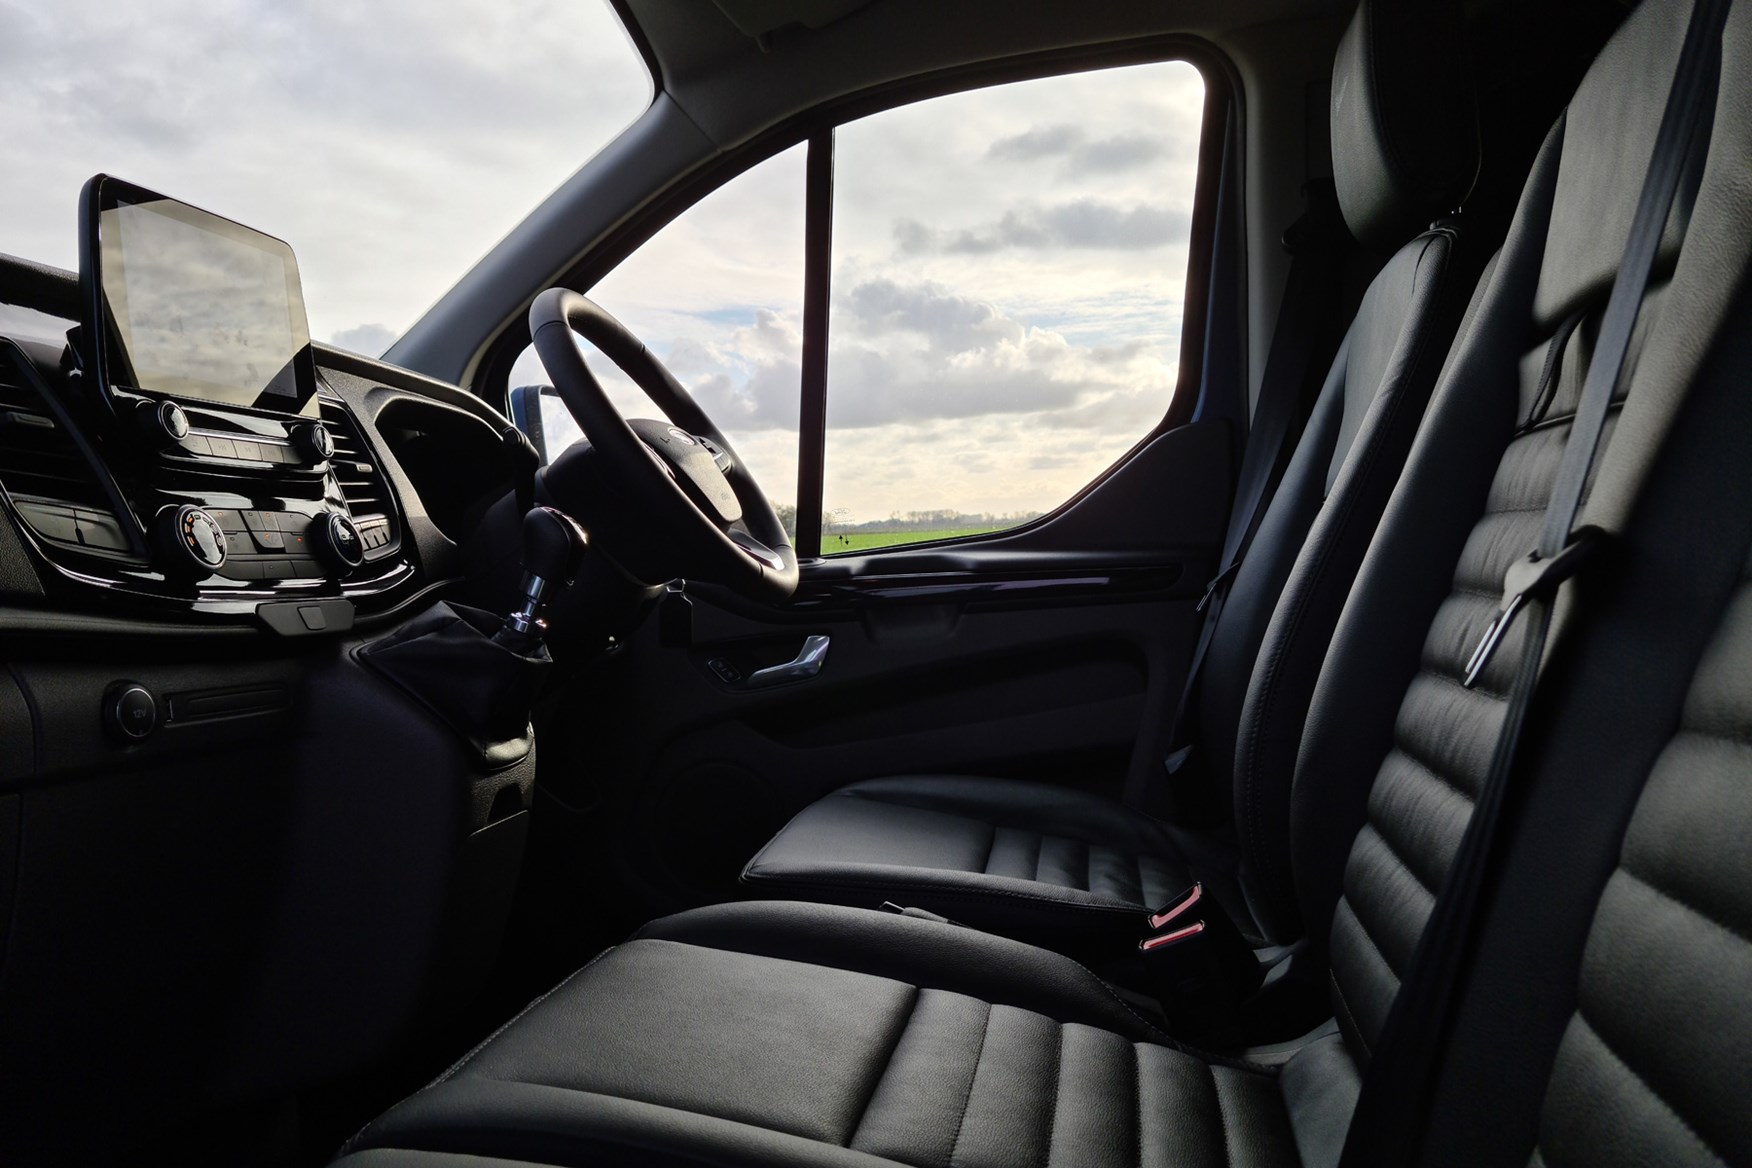 Ford Transit Custom Trail review, L2, DCiV, 2020, black leather front seats